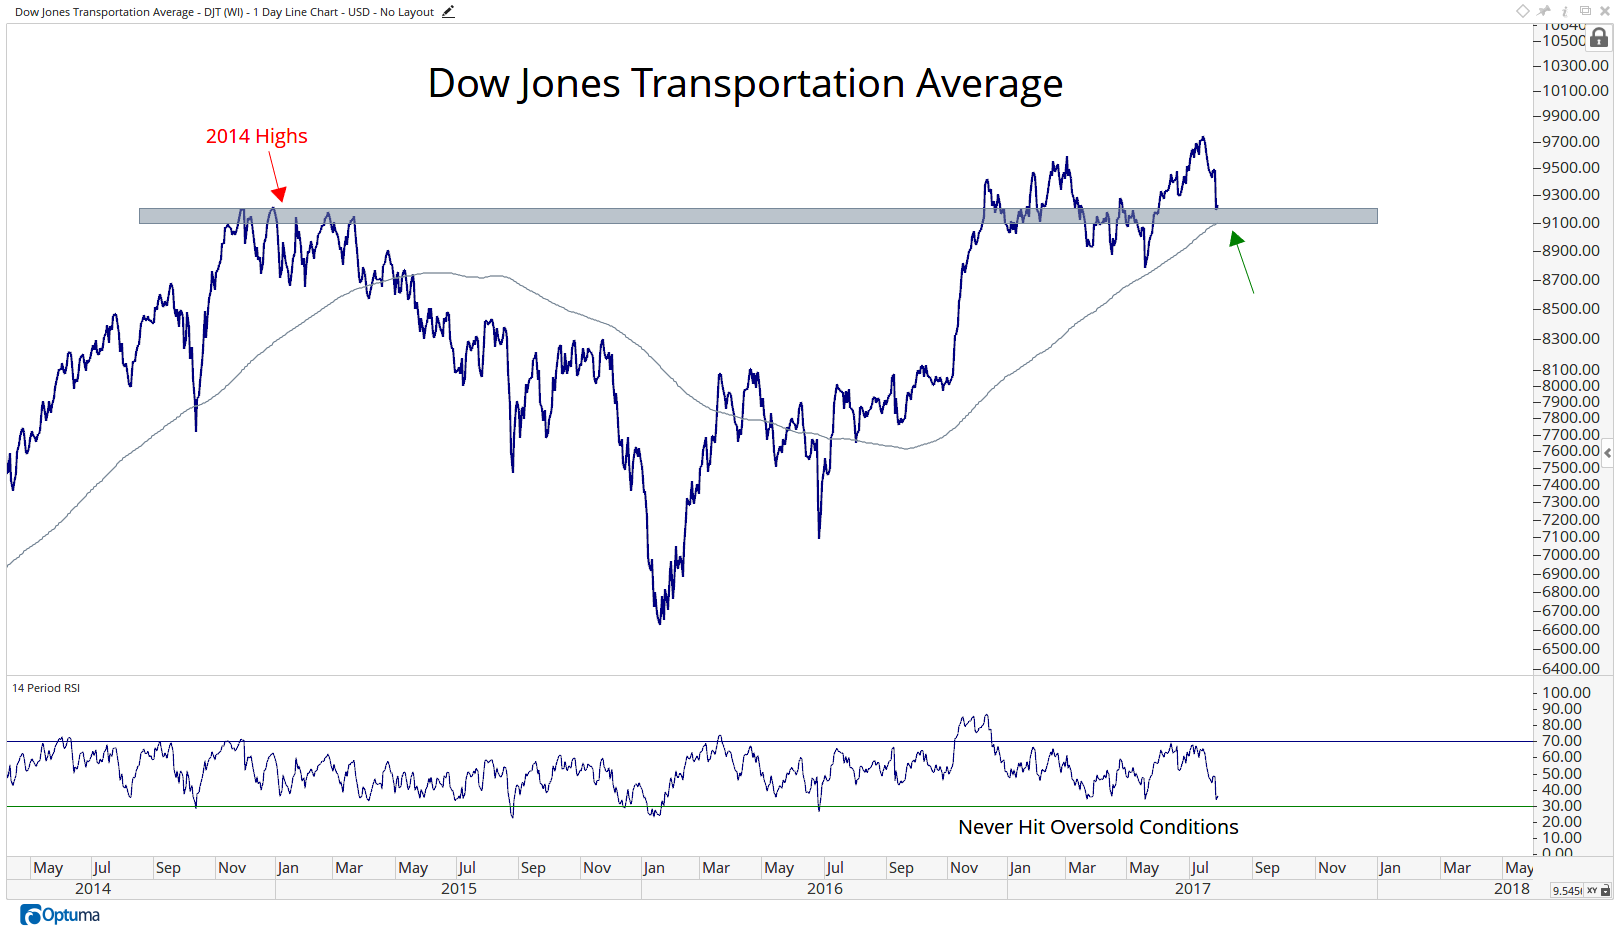 DJT - Dow Jones Transportation Average2